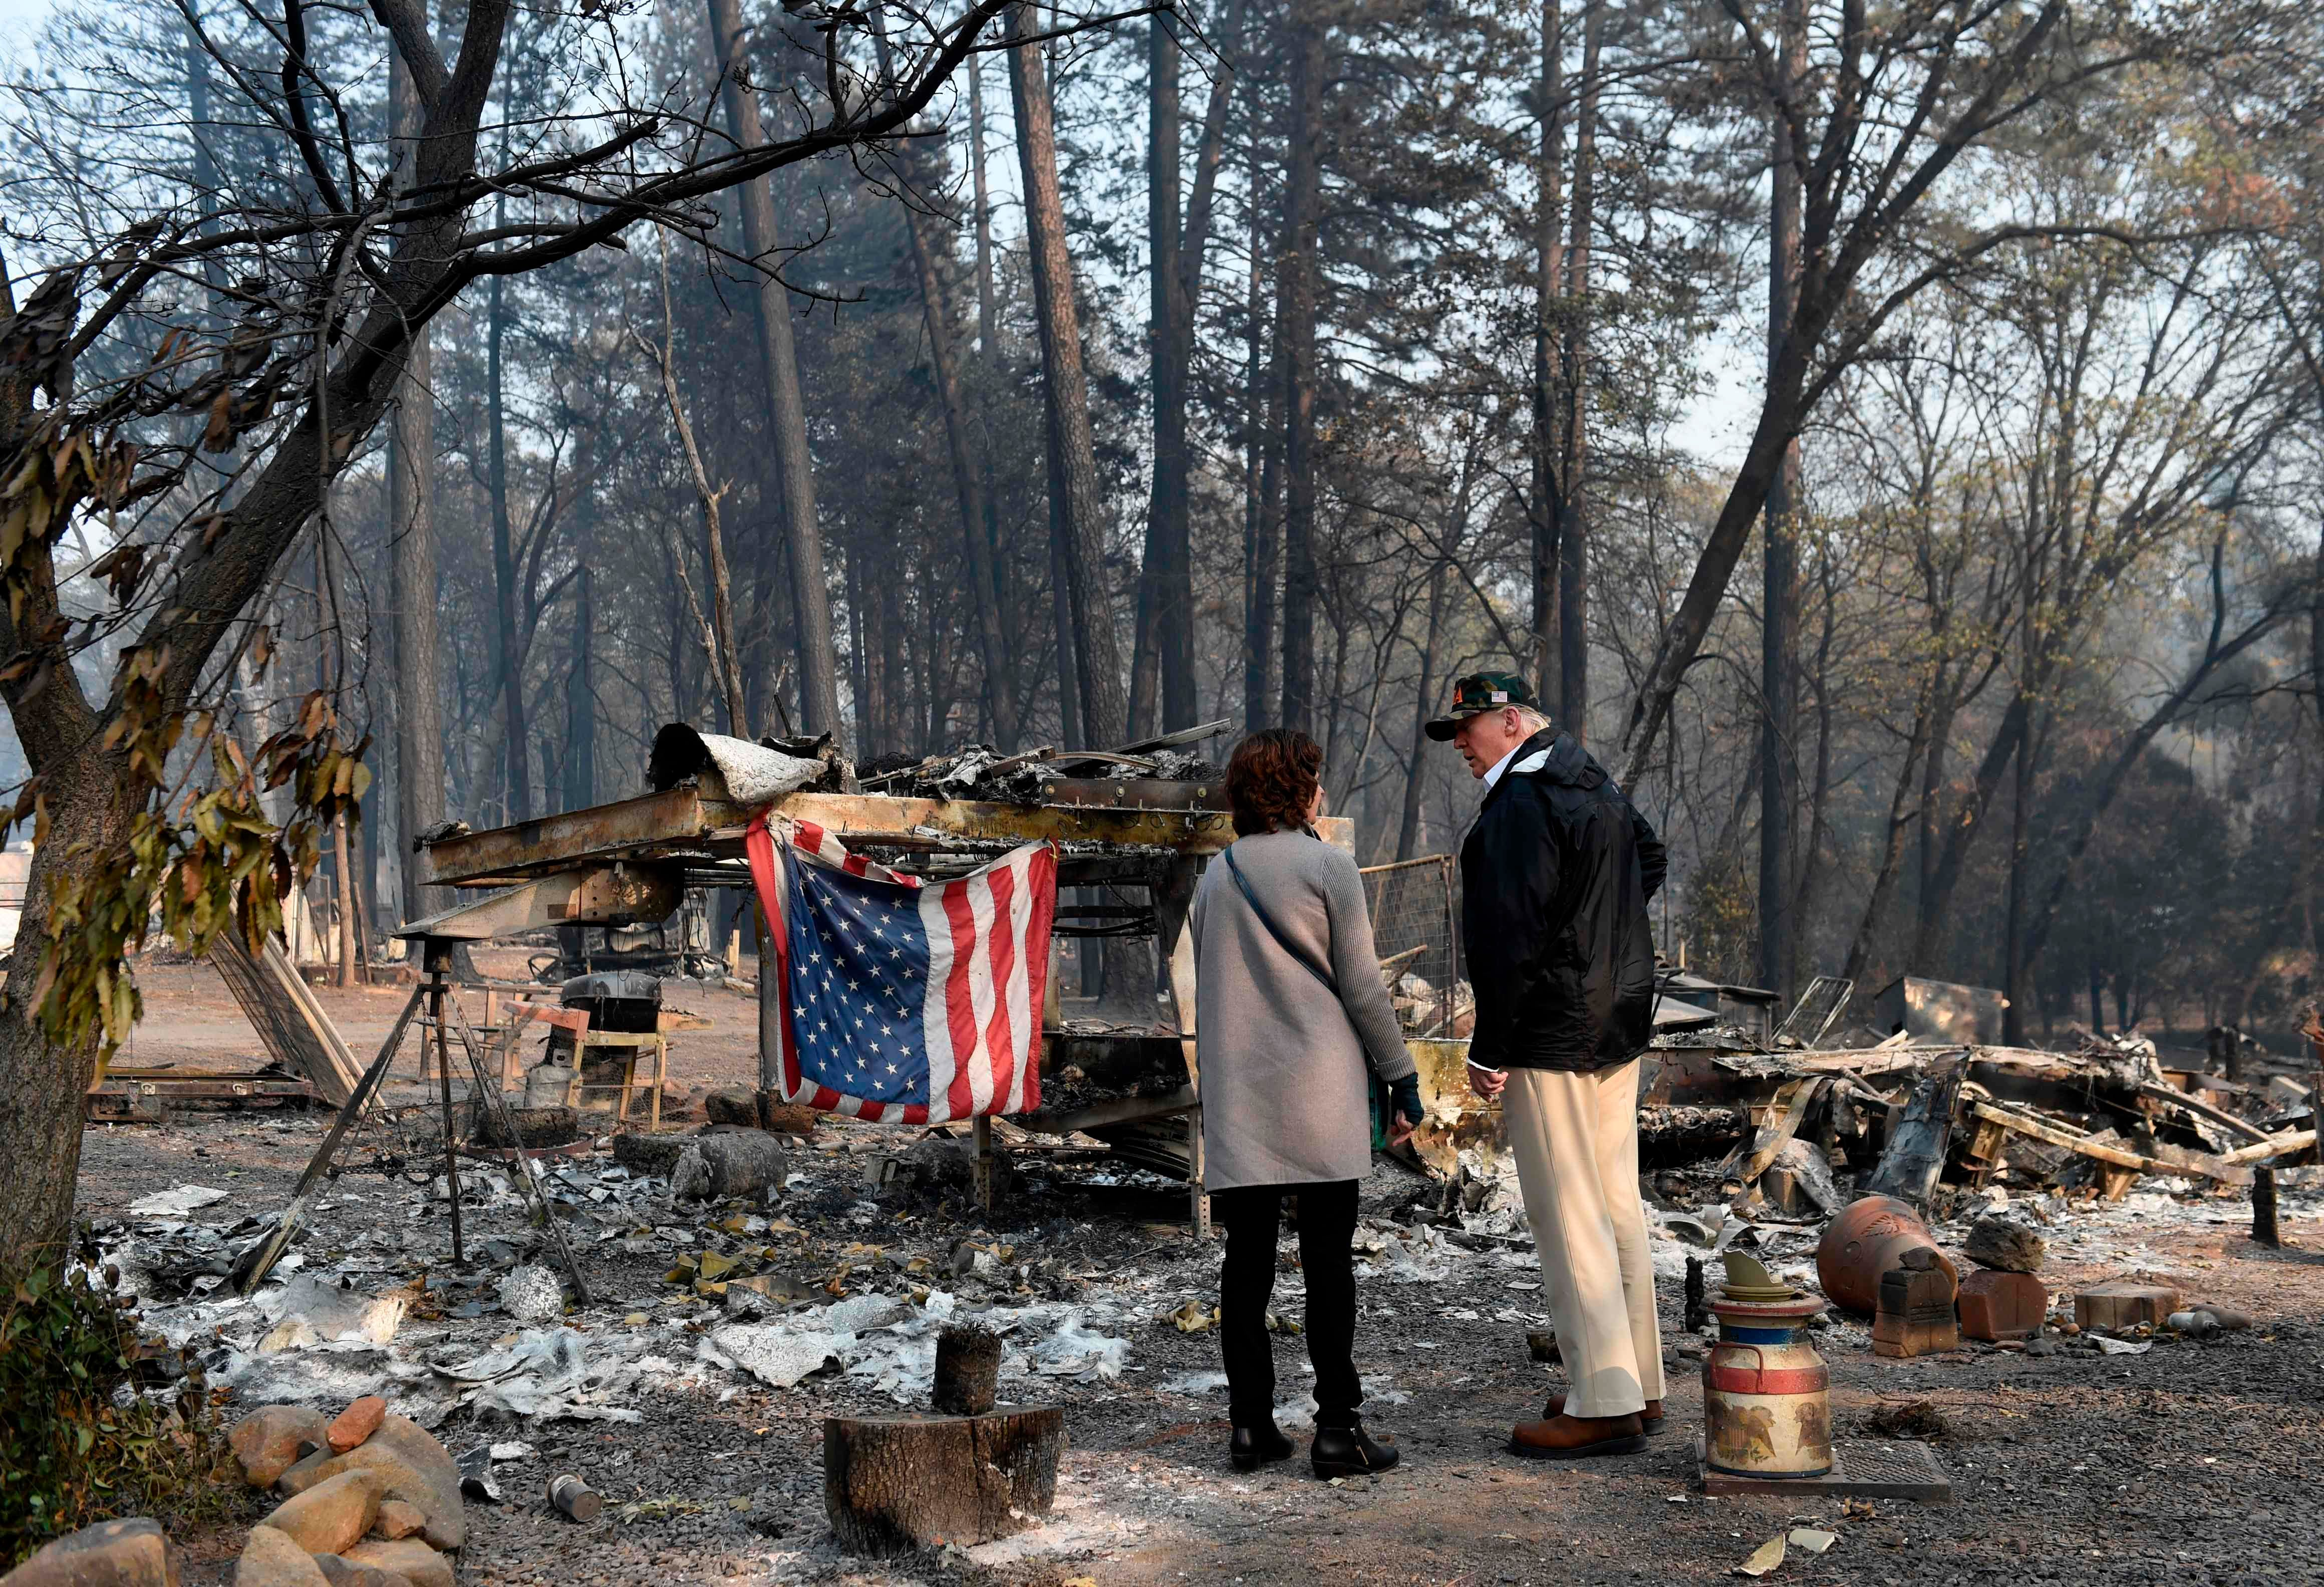 'It's like total devastation': Trump visits Paradise lost in California fire